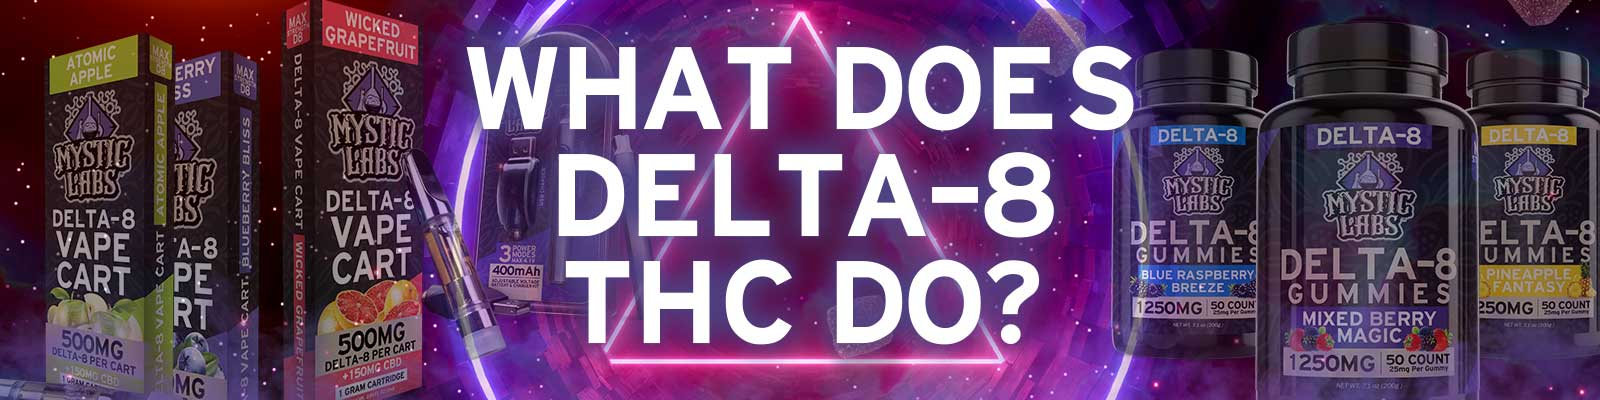 What does Delta-8 do?